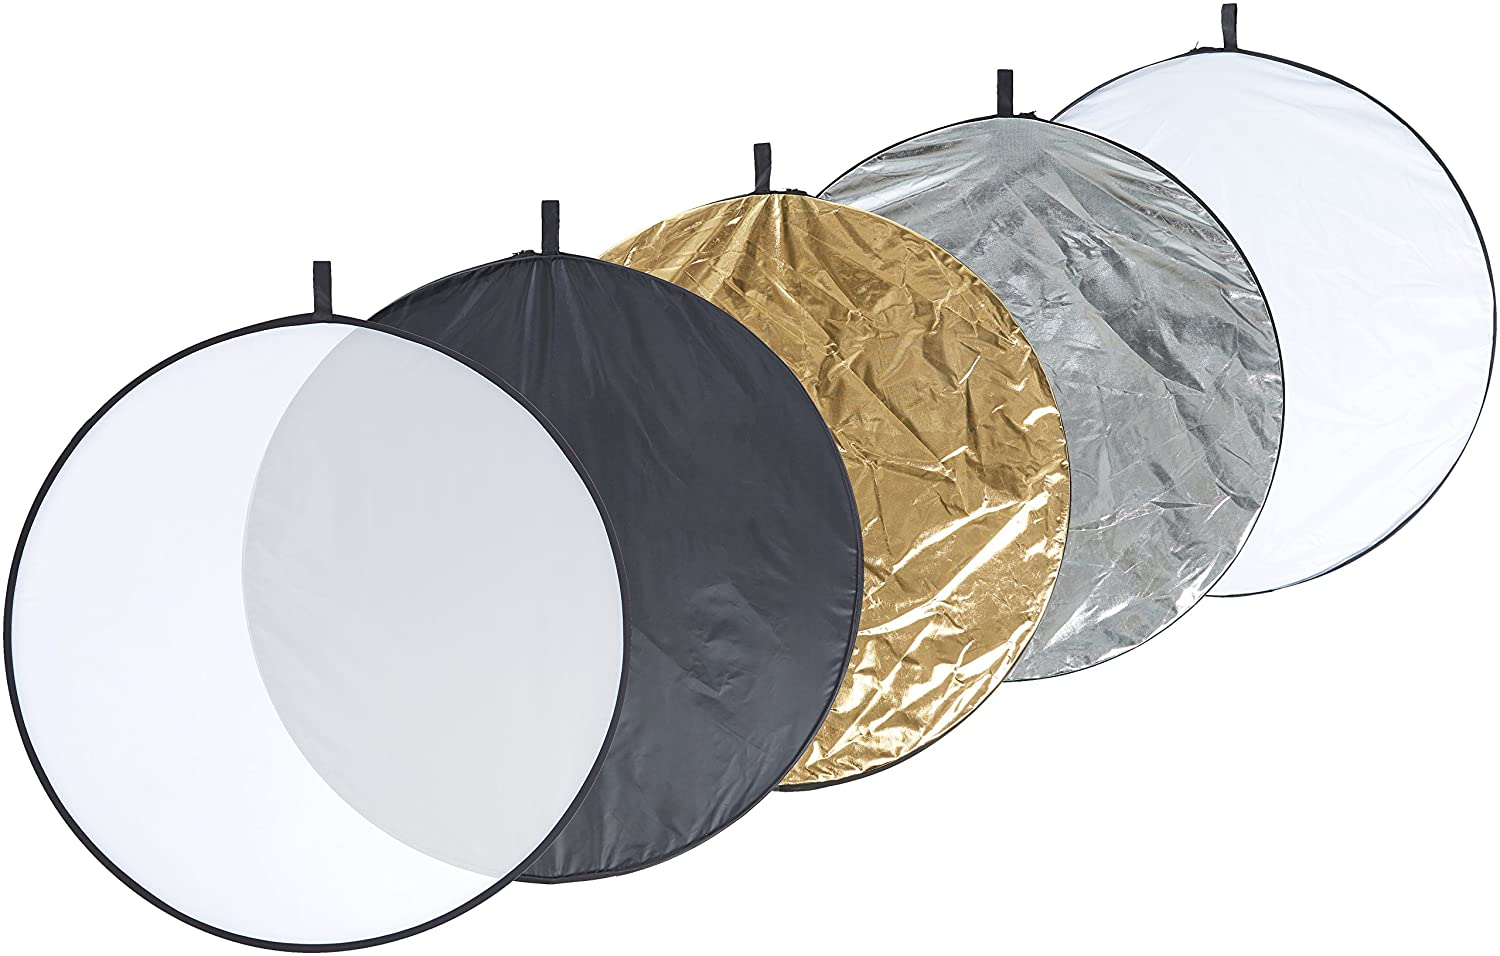 Basics 43-Inch 5-1 Collapsible Multi-Disc Light Reflector with Bag RF043